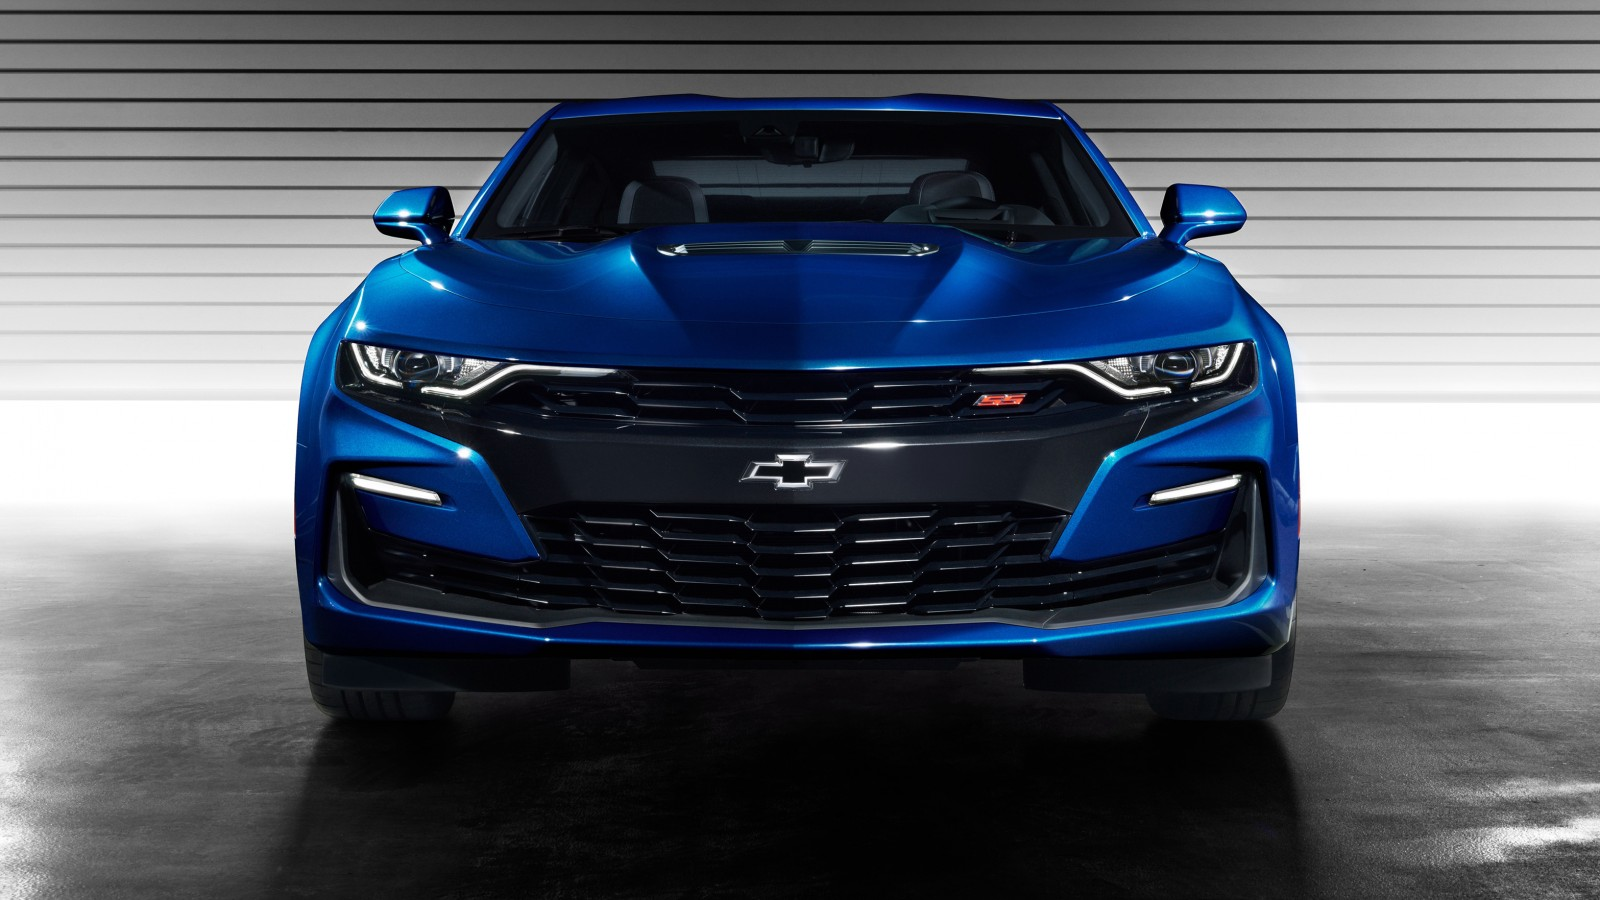 2019 Chevrolet Camaro SS Wallpaper | HD Car Wallpapers | ID #10155